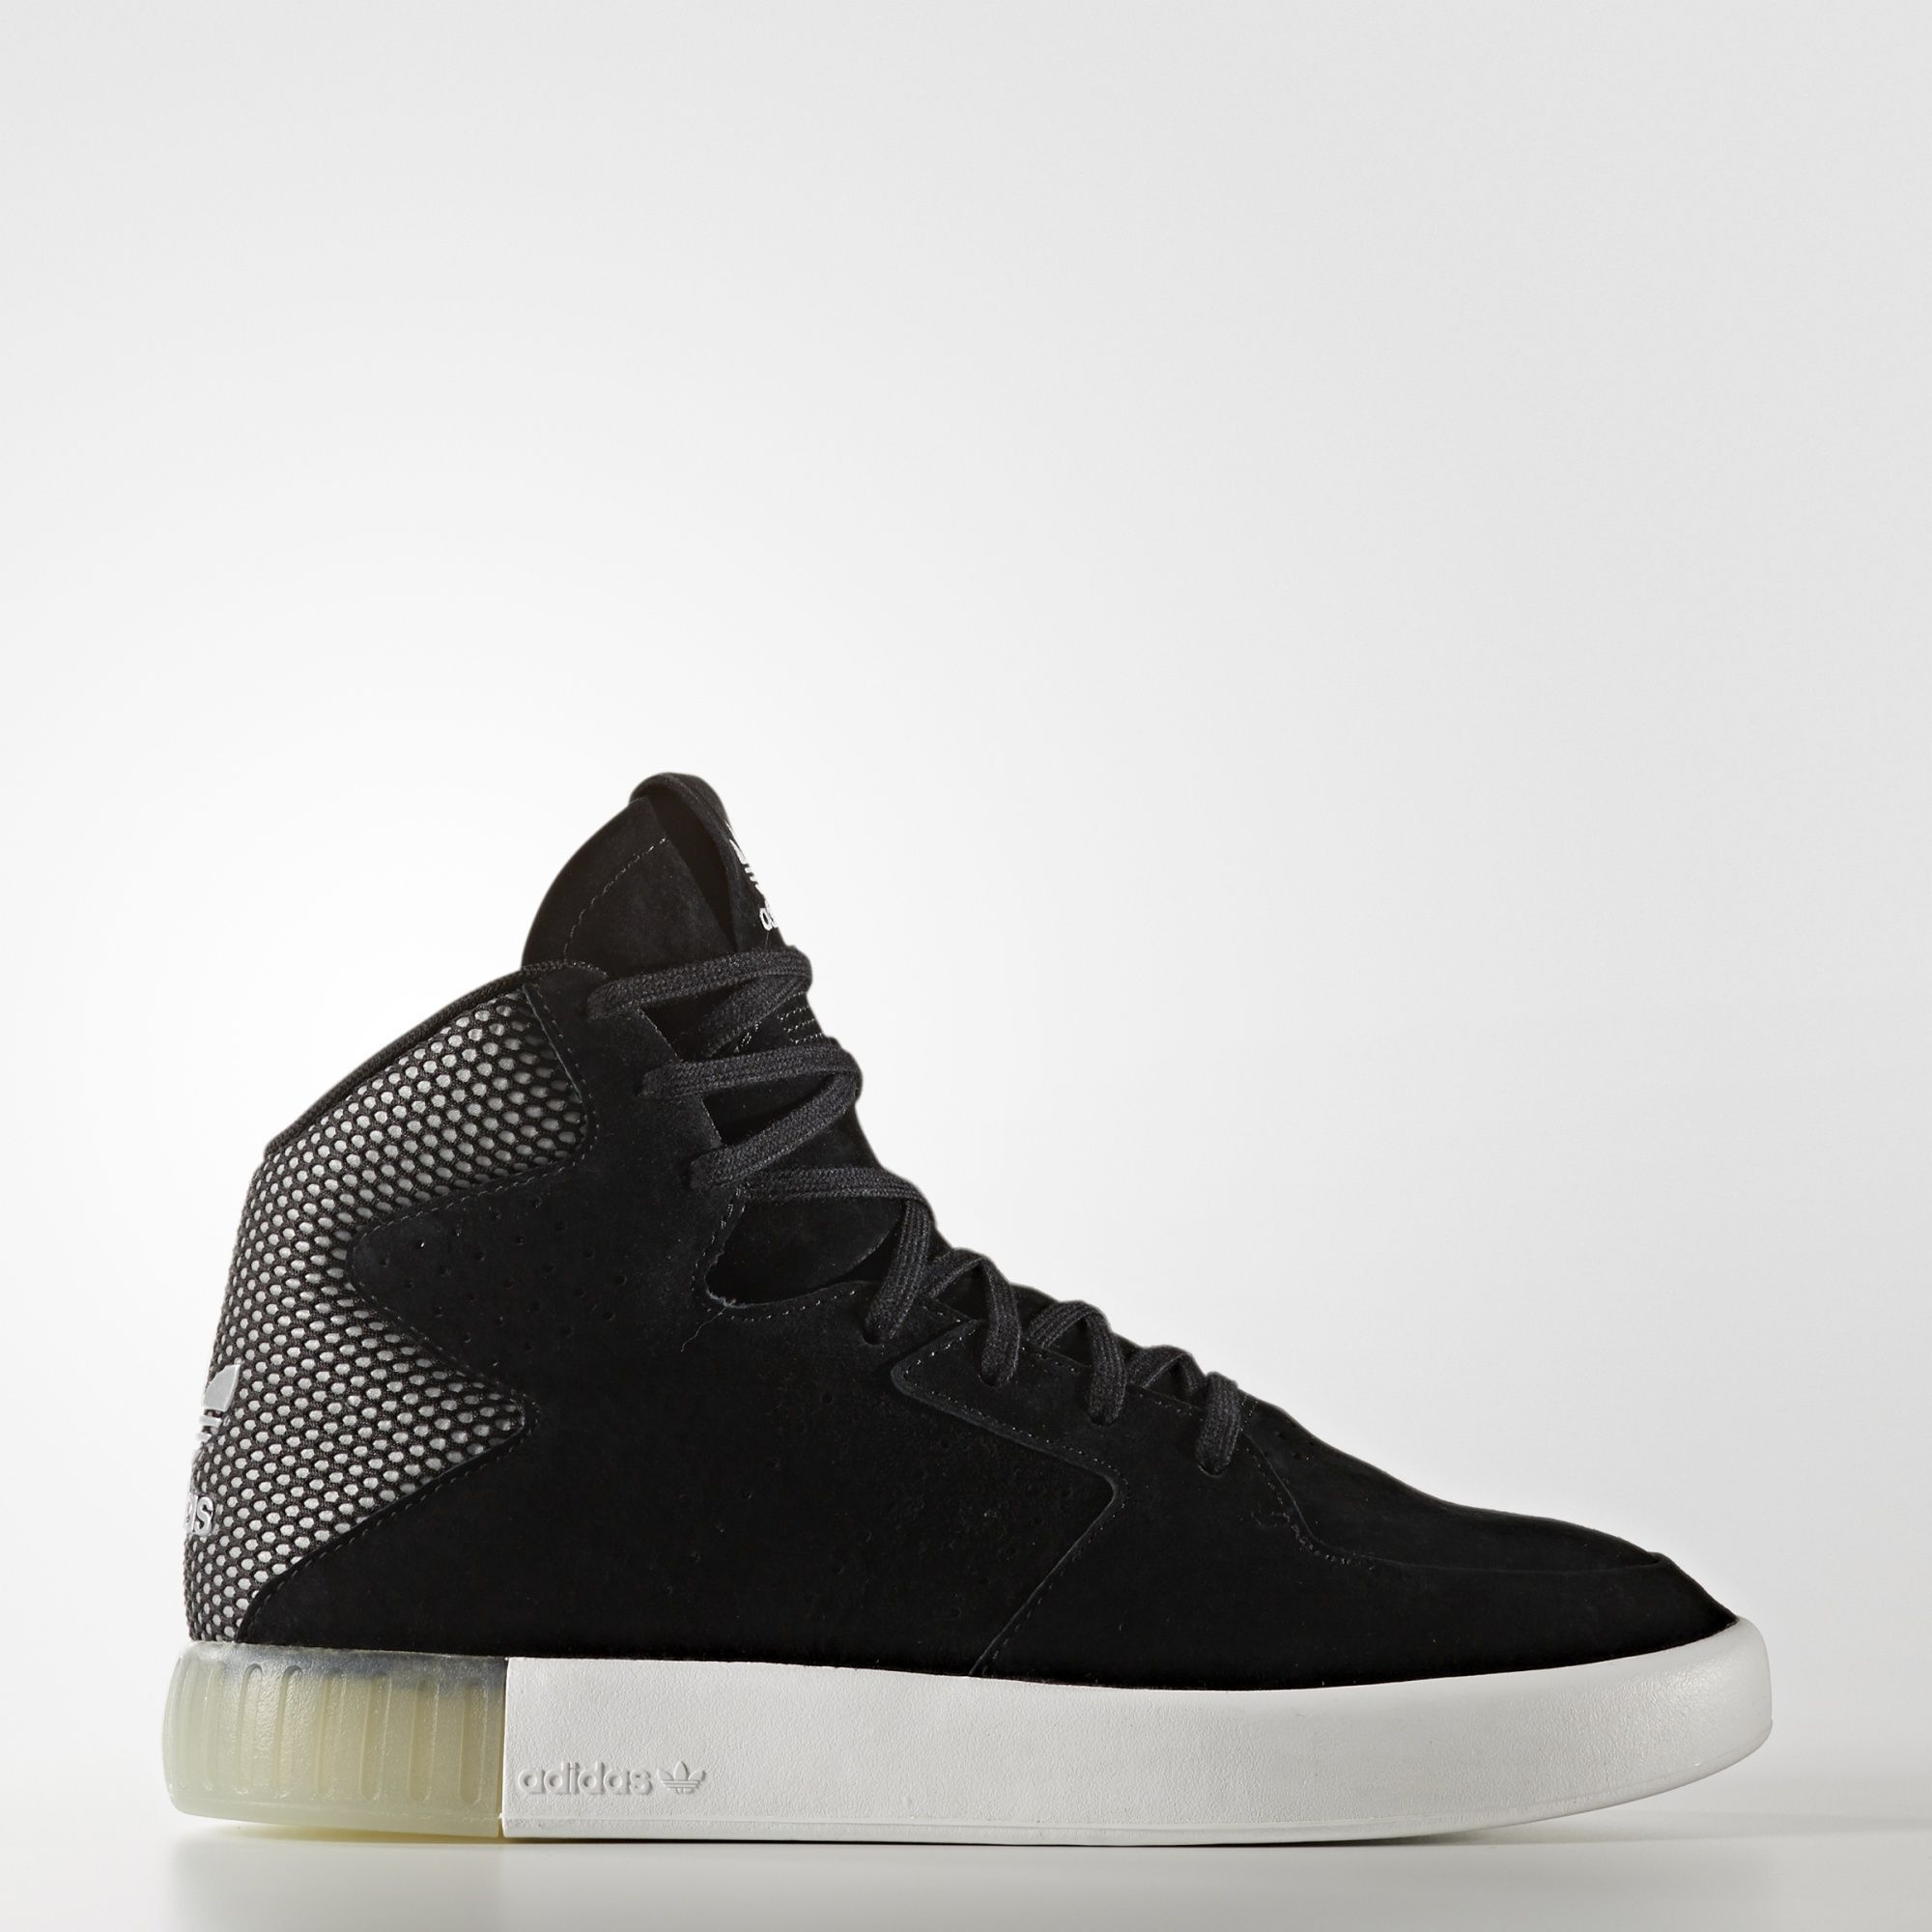 Adidas Orignals NWT Womens Tubular Invader 2.0 Sneakers Size 7.5 Black and White